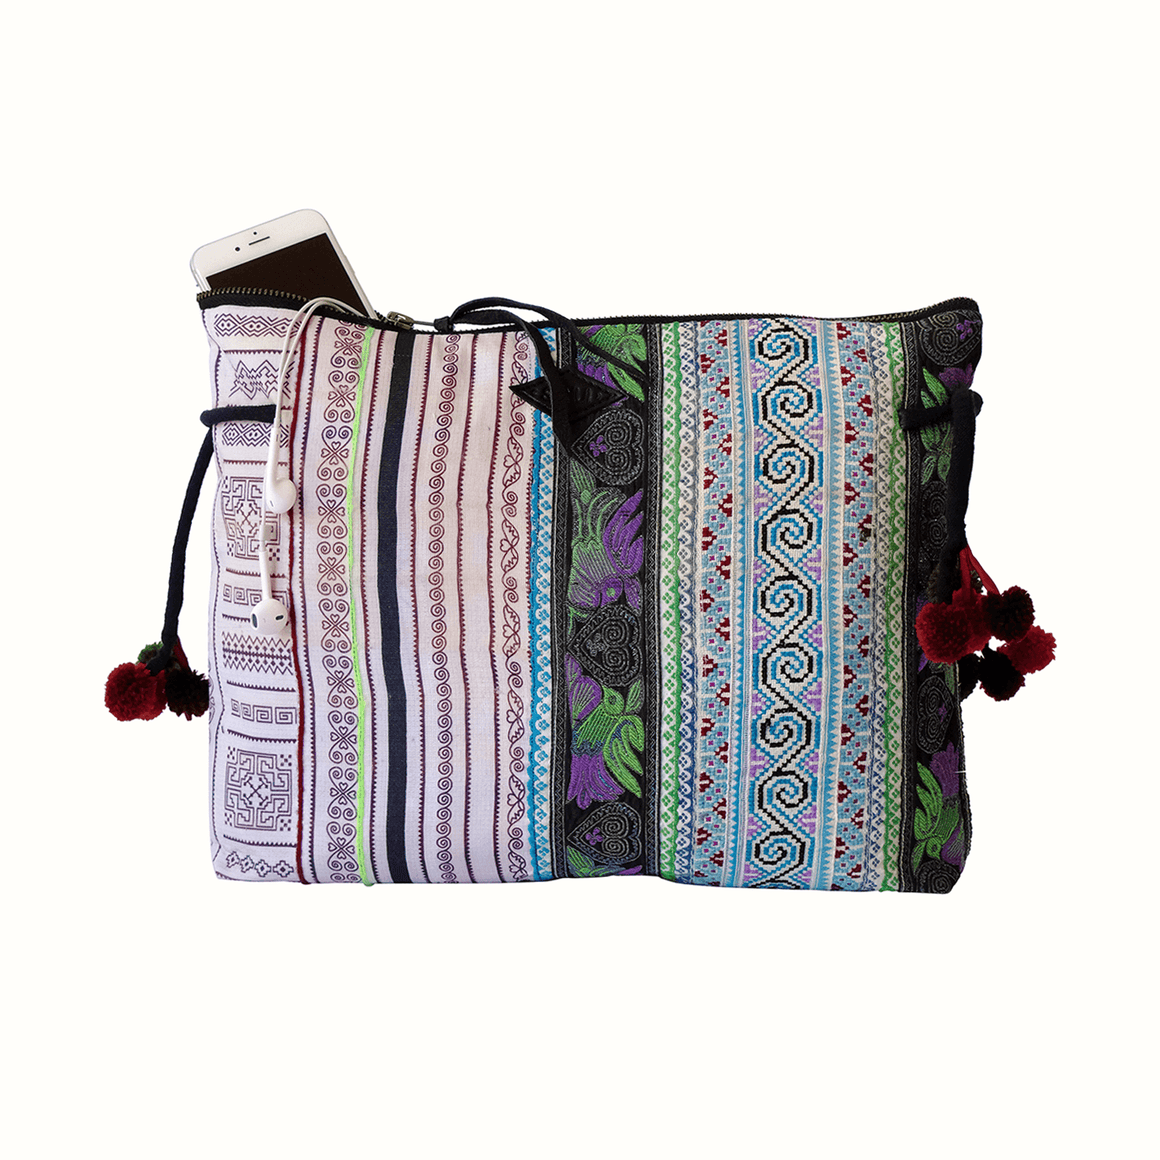 Samui Bags Tropical Island Handmade Thai Bag in Thailand